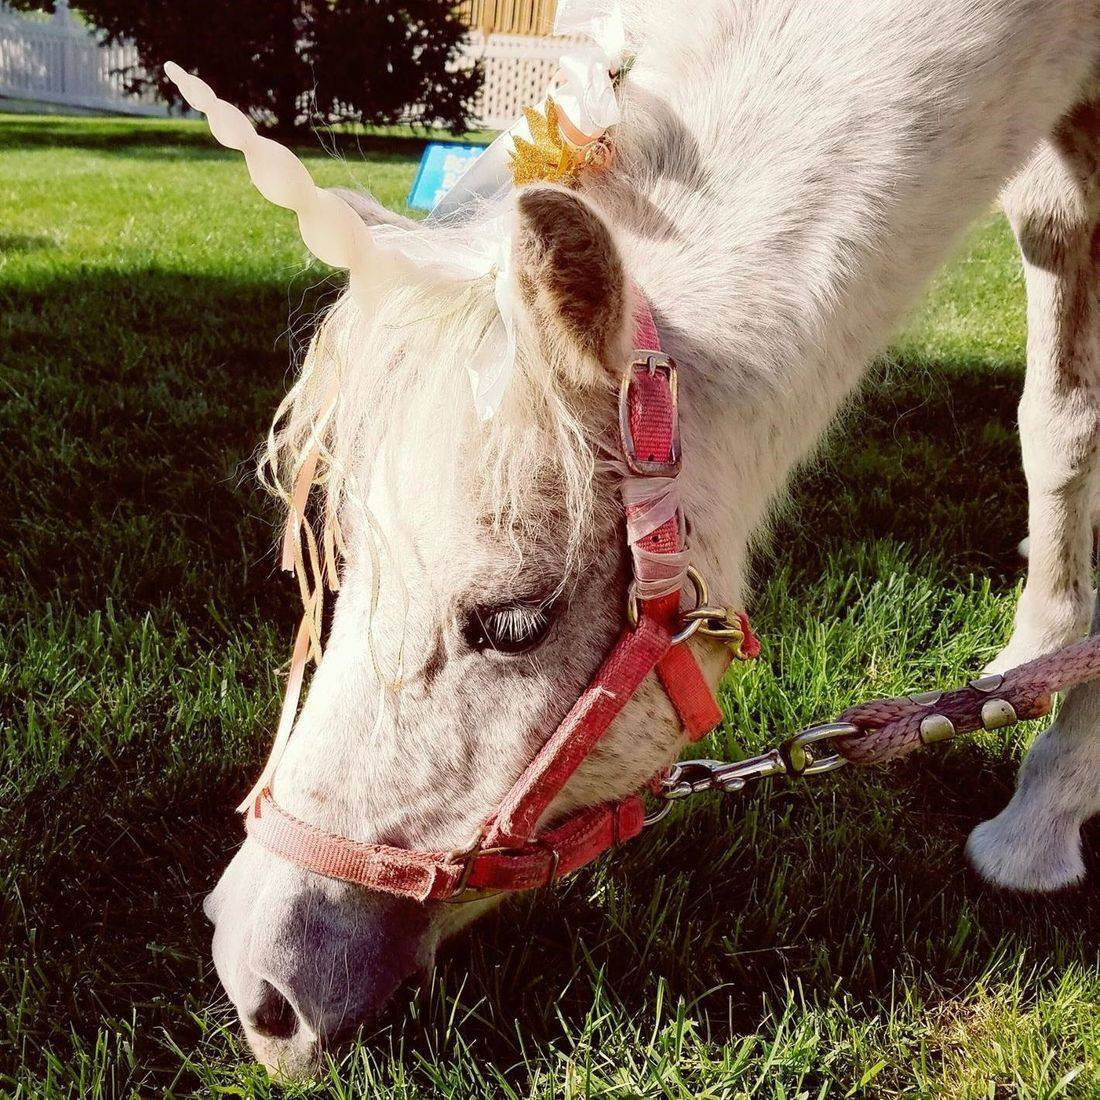 Small white unicorn mini horse eating grass